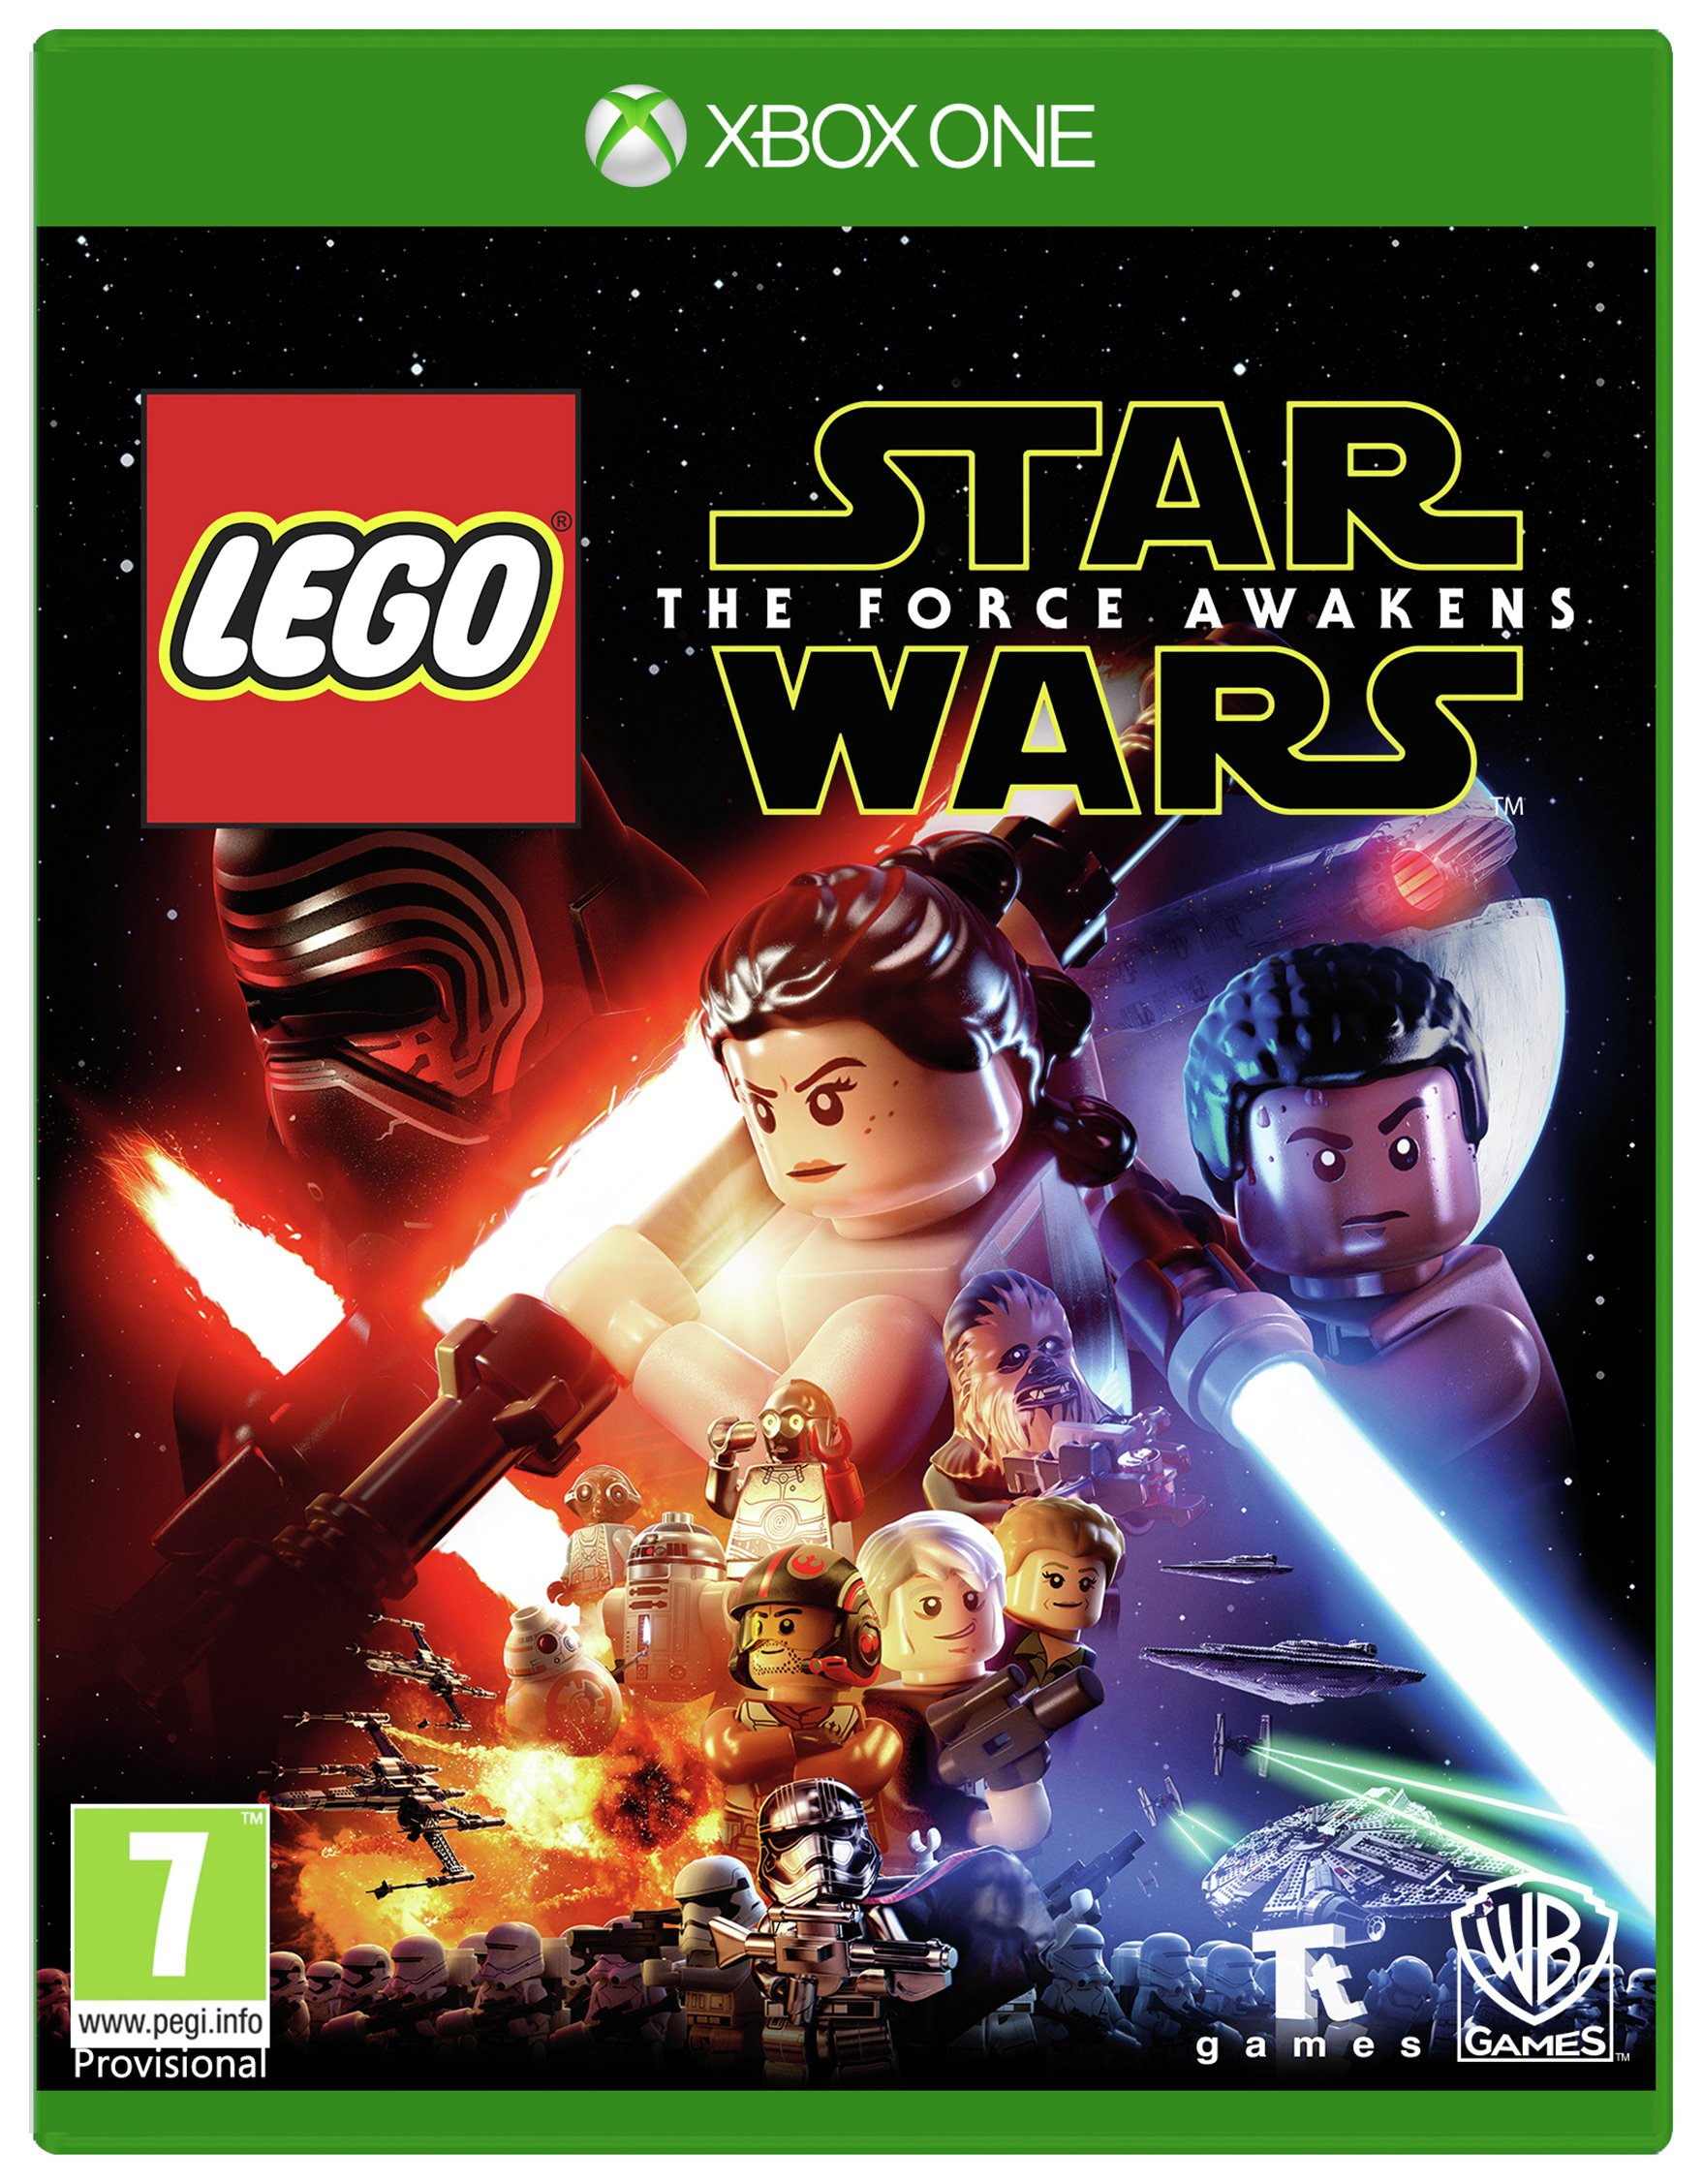 Image of LEGO Star Wars - The Force Awakens - Xbox - One Game.